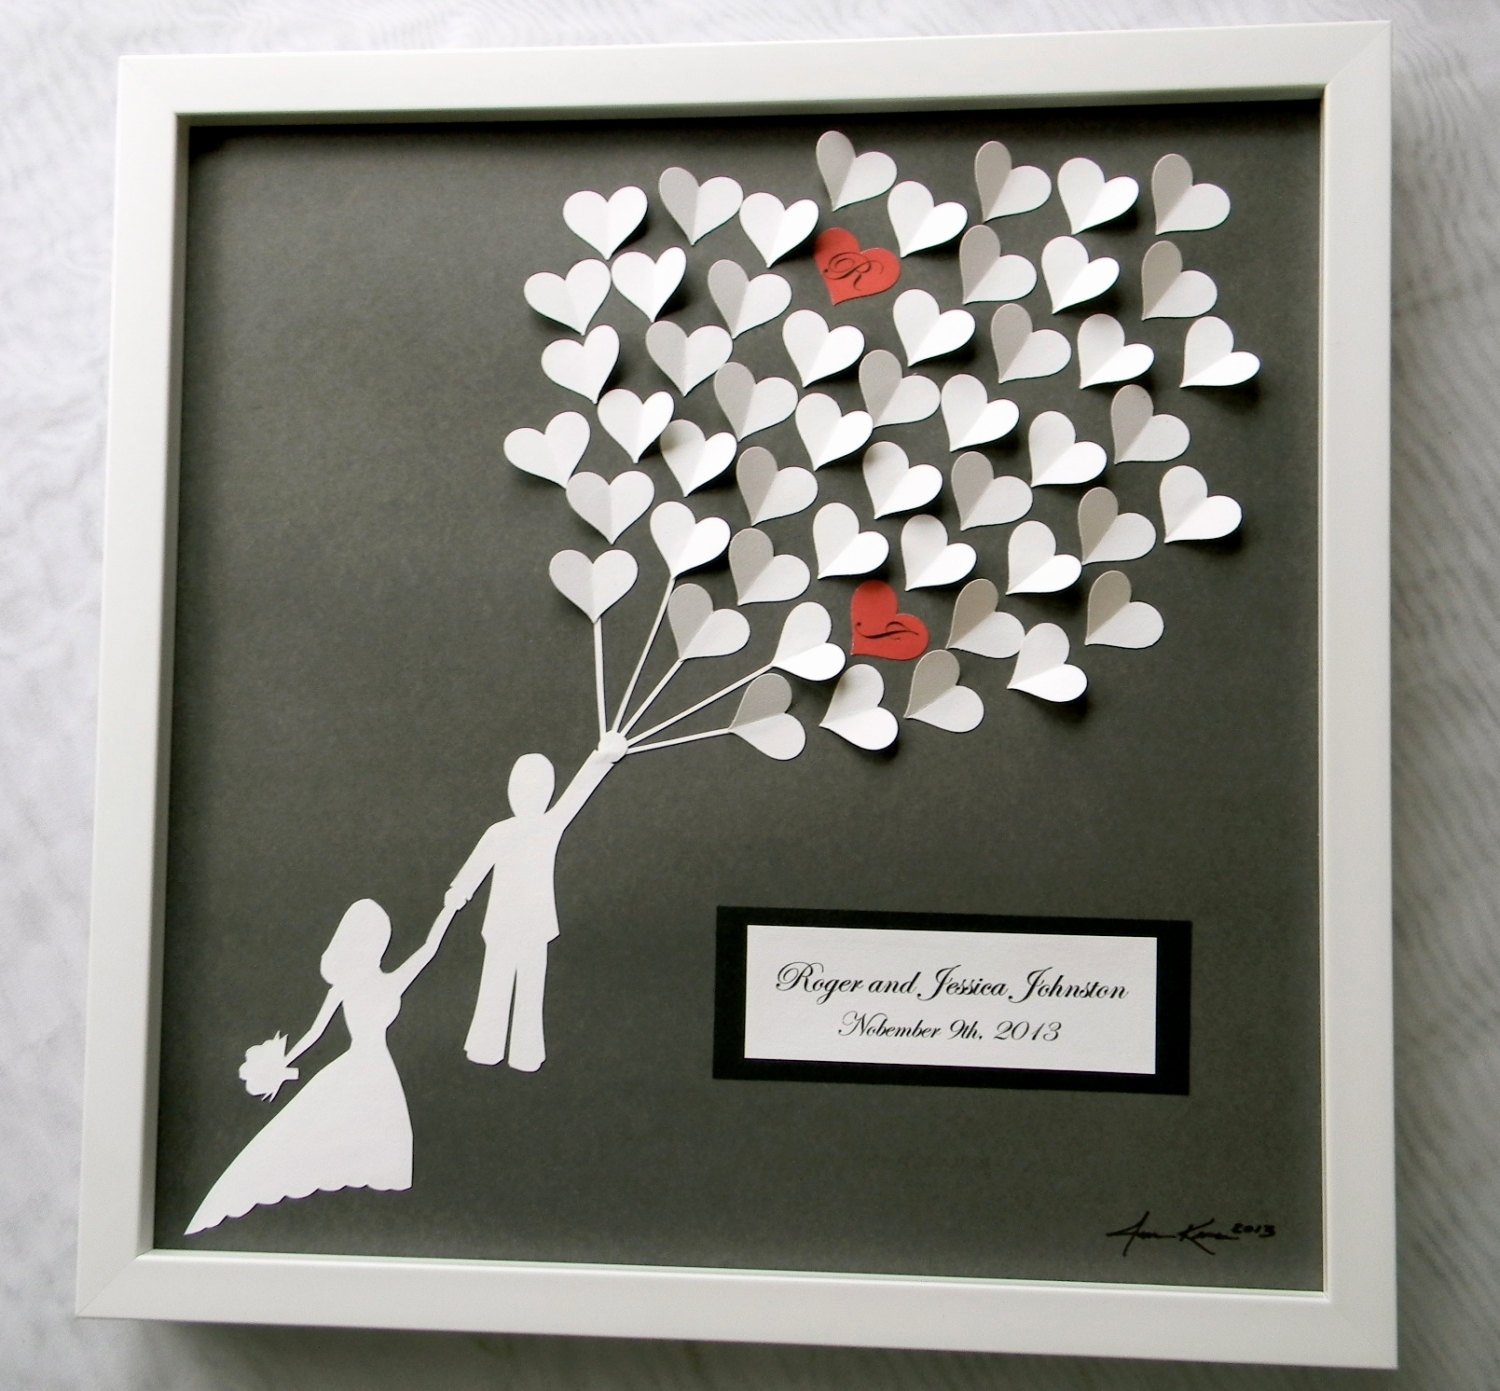 sentimental wedding gift best friend best of wedding gifts ideas for